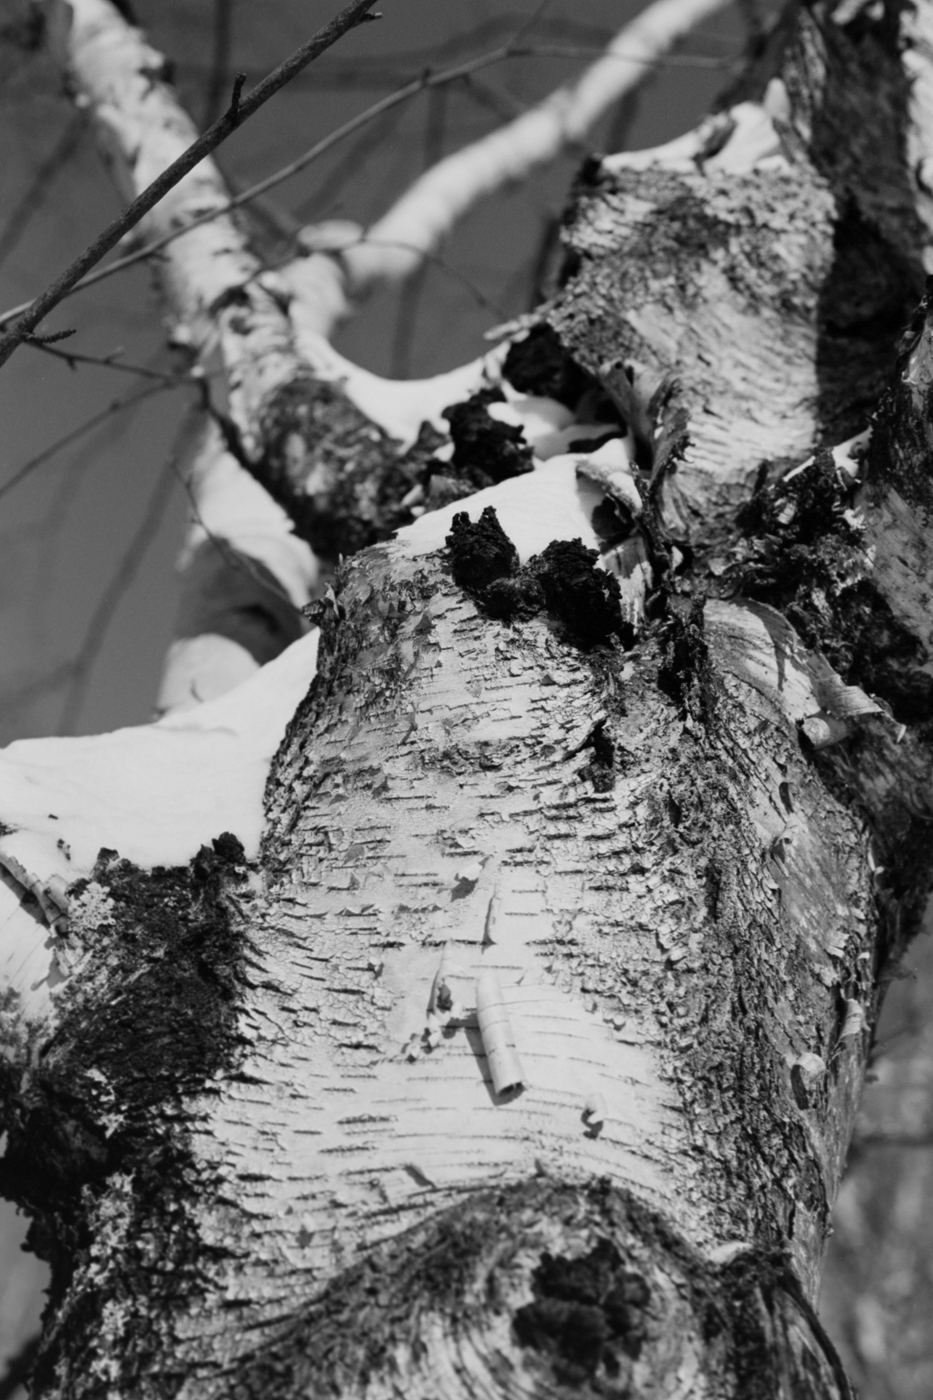 Lake Superior National Forrest winter black and white landscape detail